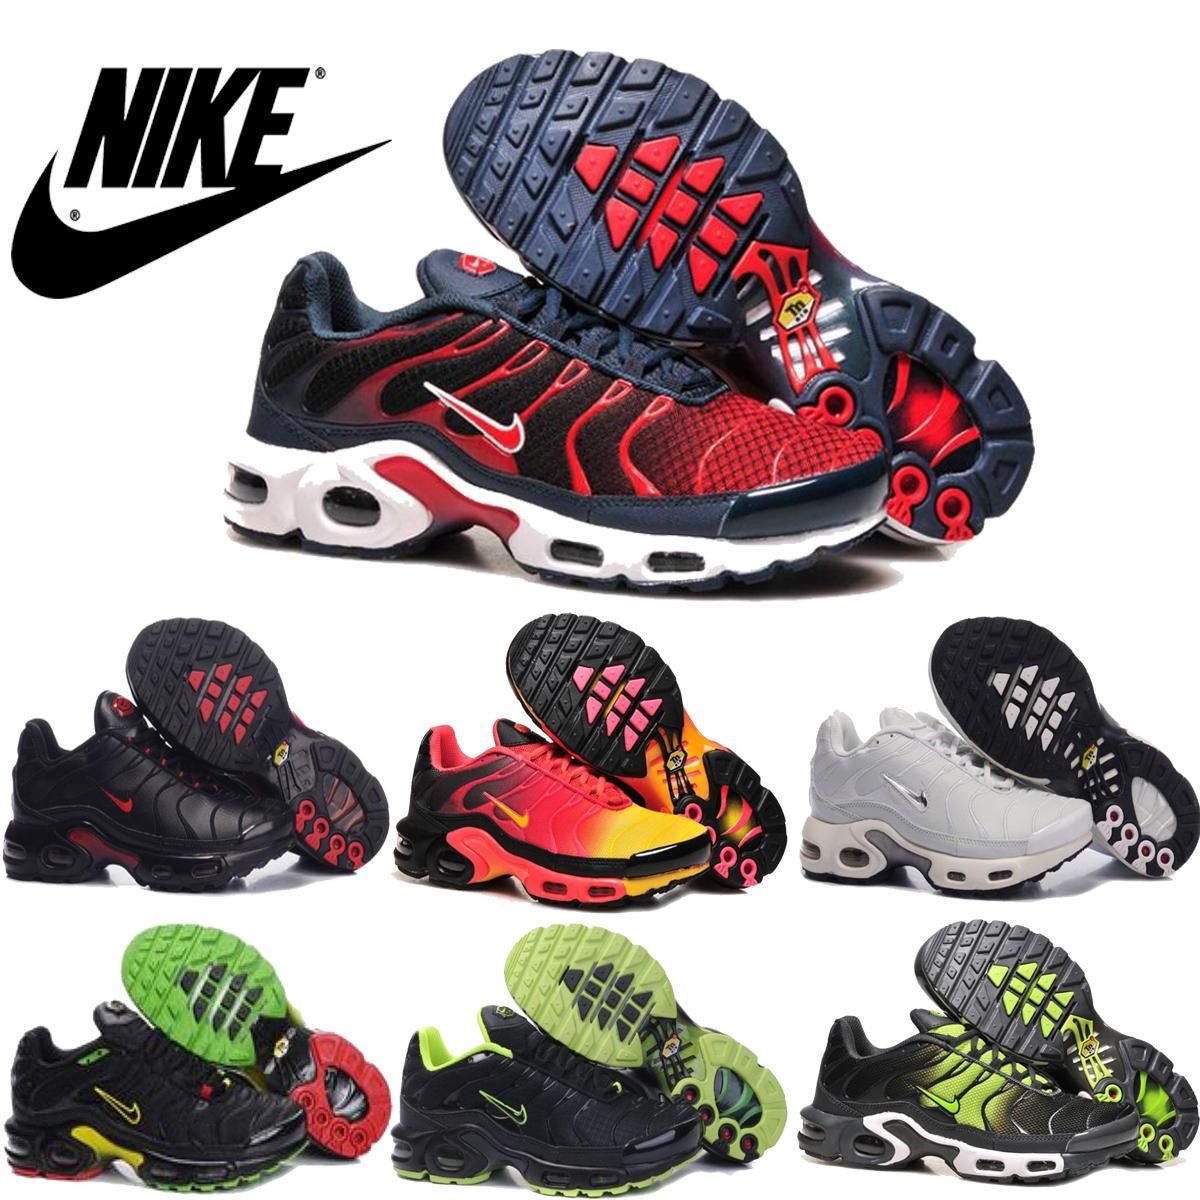 Mens Shoes: Nike Air Max (Tn) Running Shoes